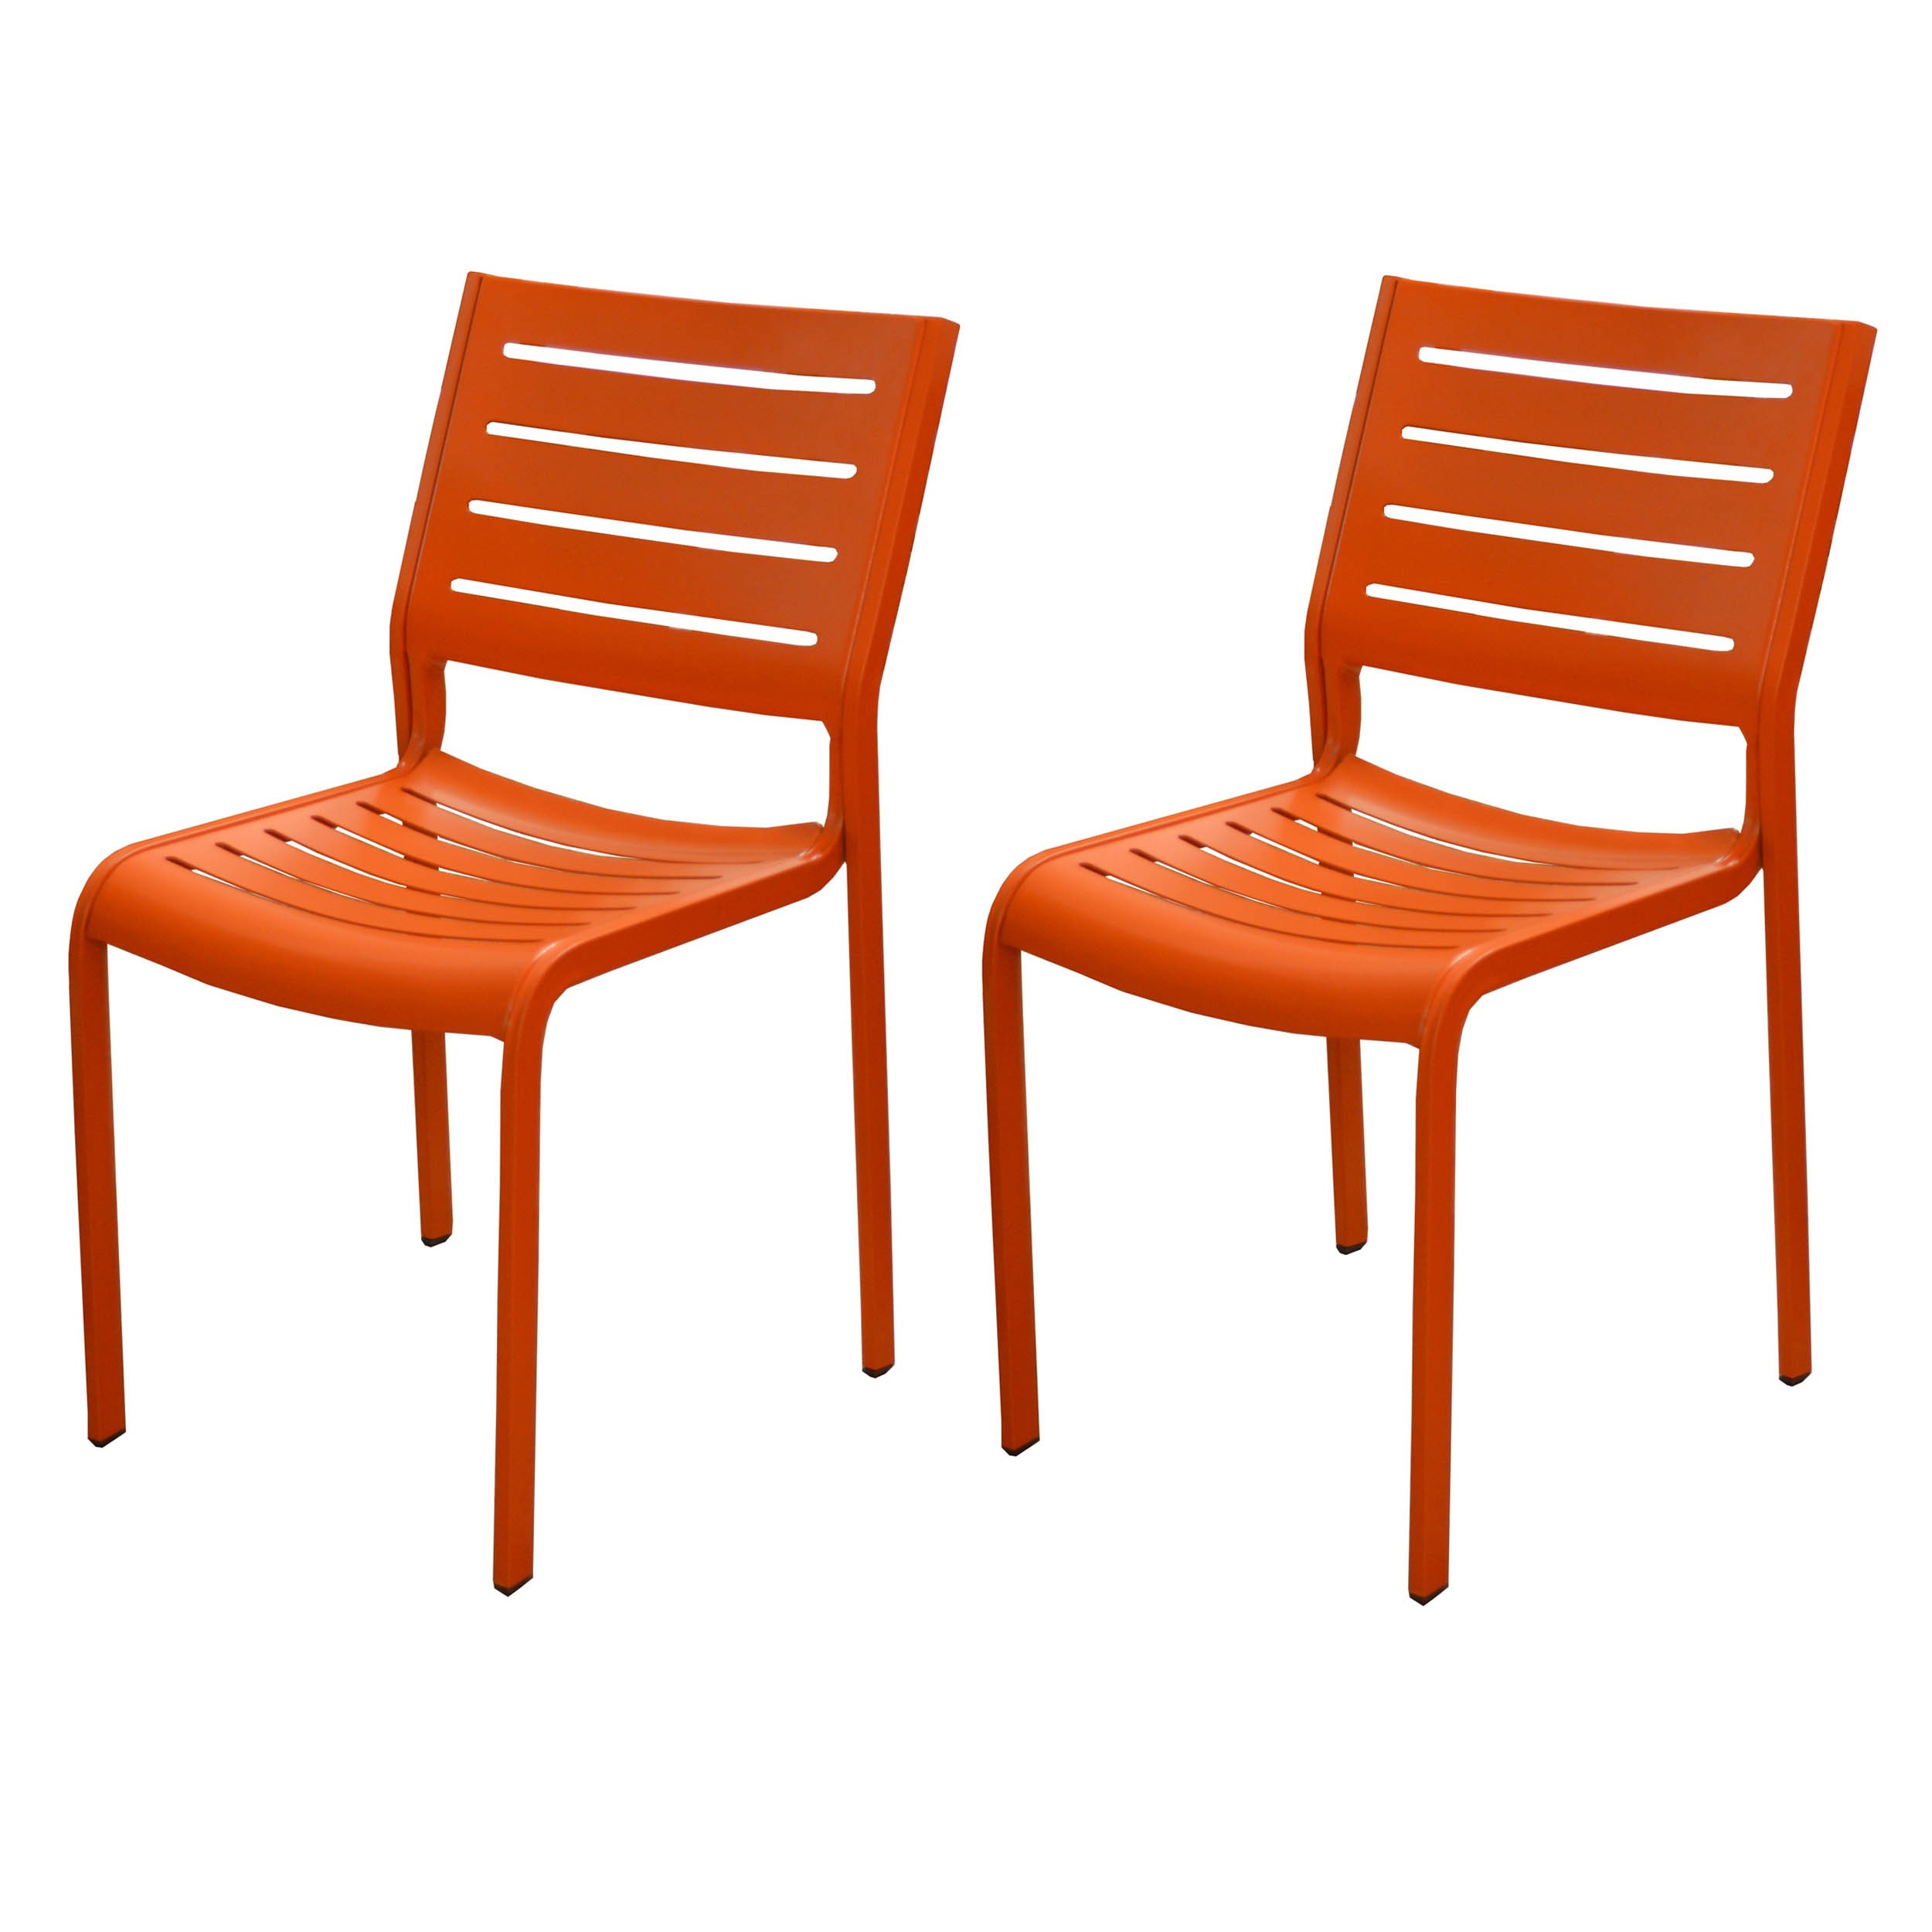 chaise isla orange d couvrez nos chaises isla orange petit prix rendez vous d co. Black Bedroom Furniture Sets. Home Design Ideas